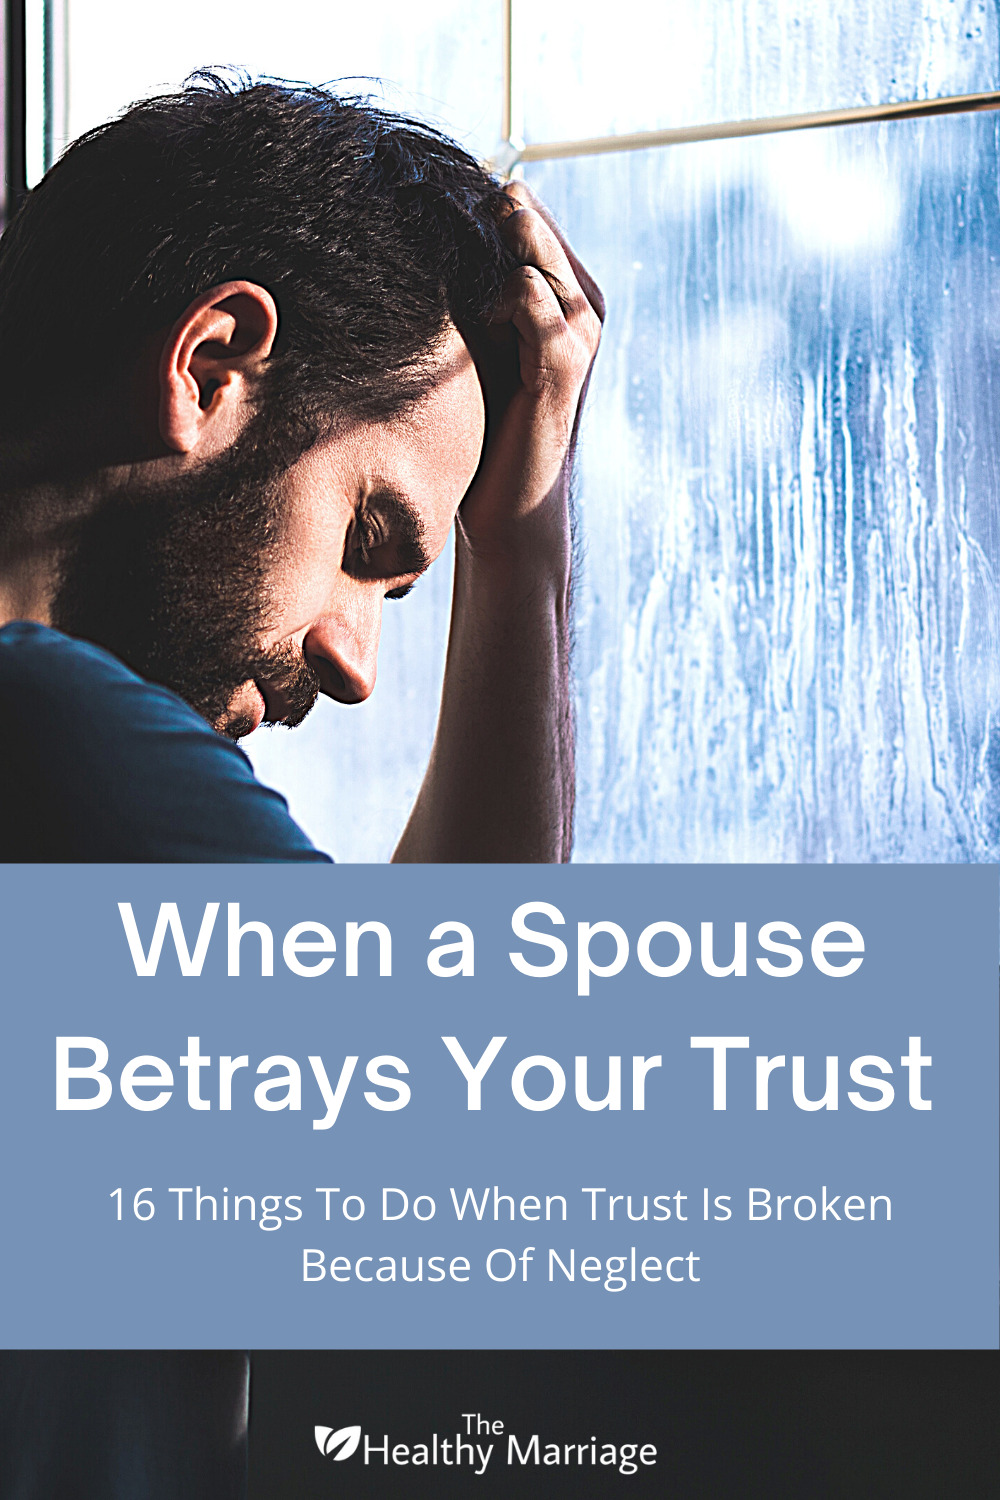 _When a Spouse Betrays Your Trust Pinterest Pin